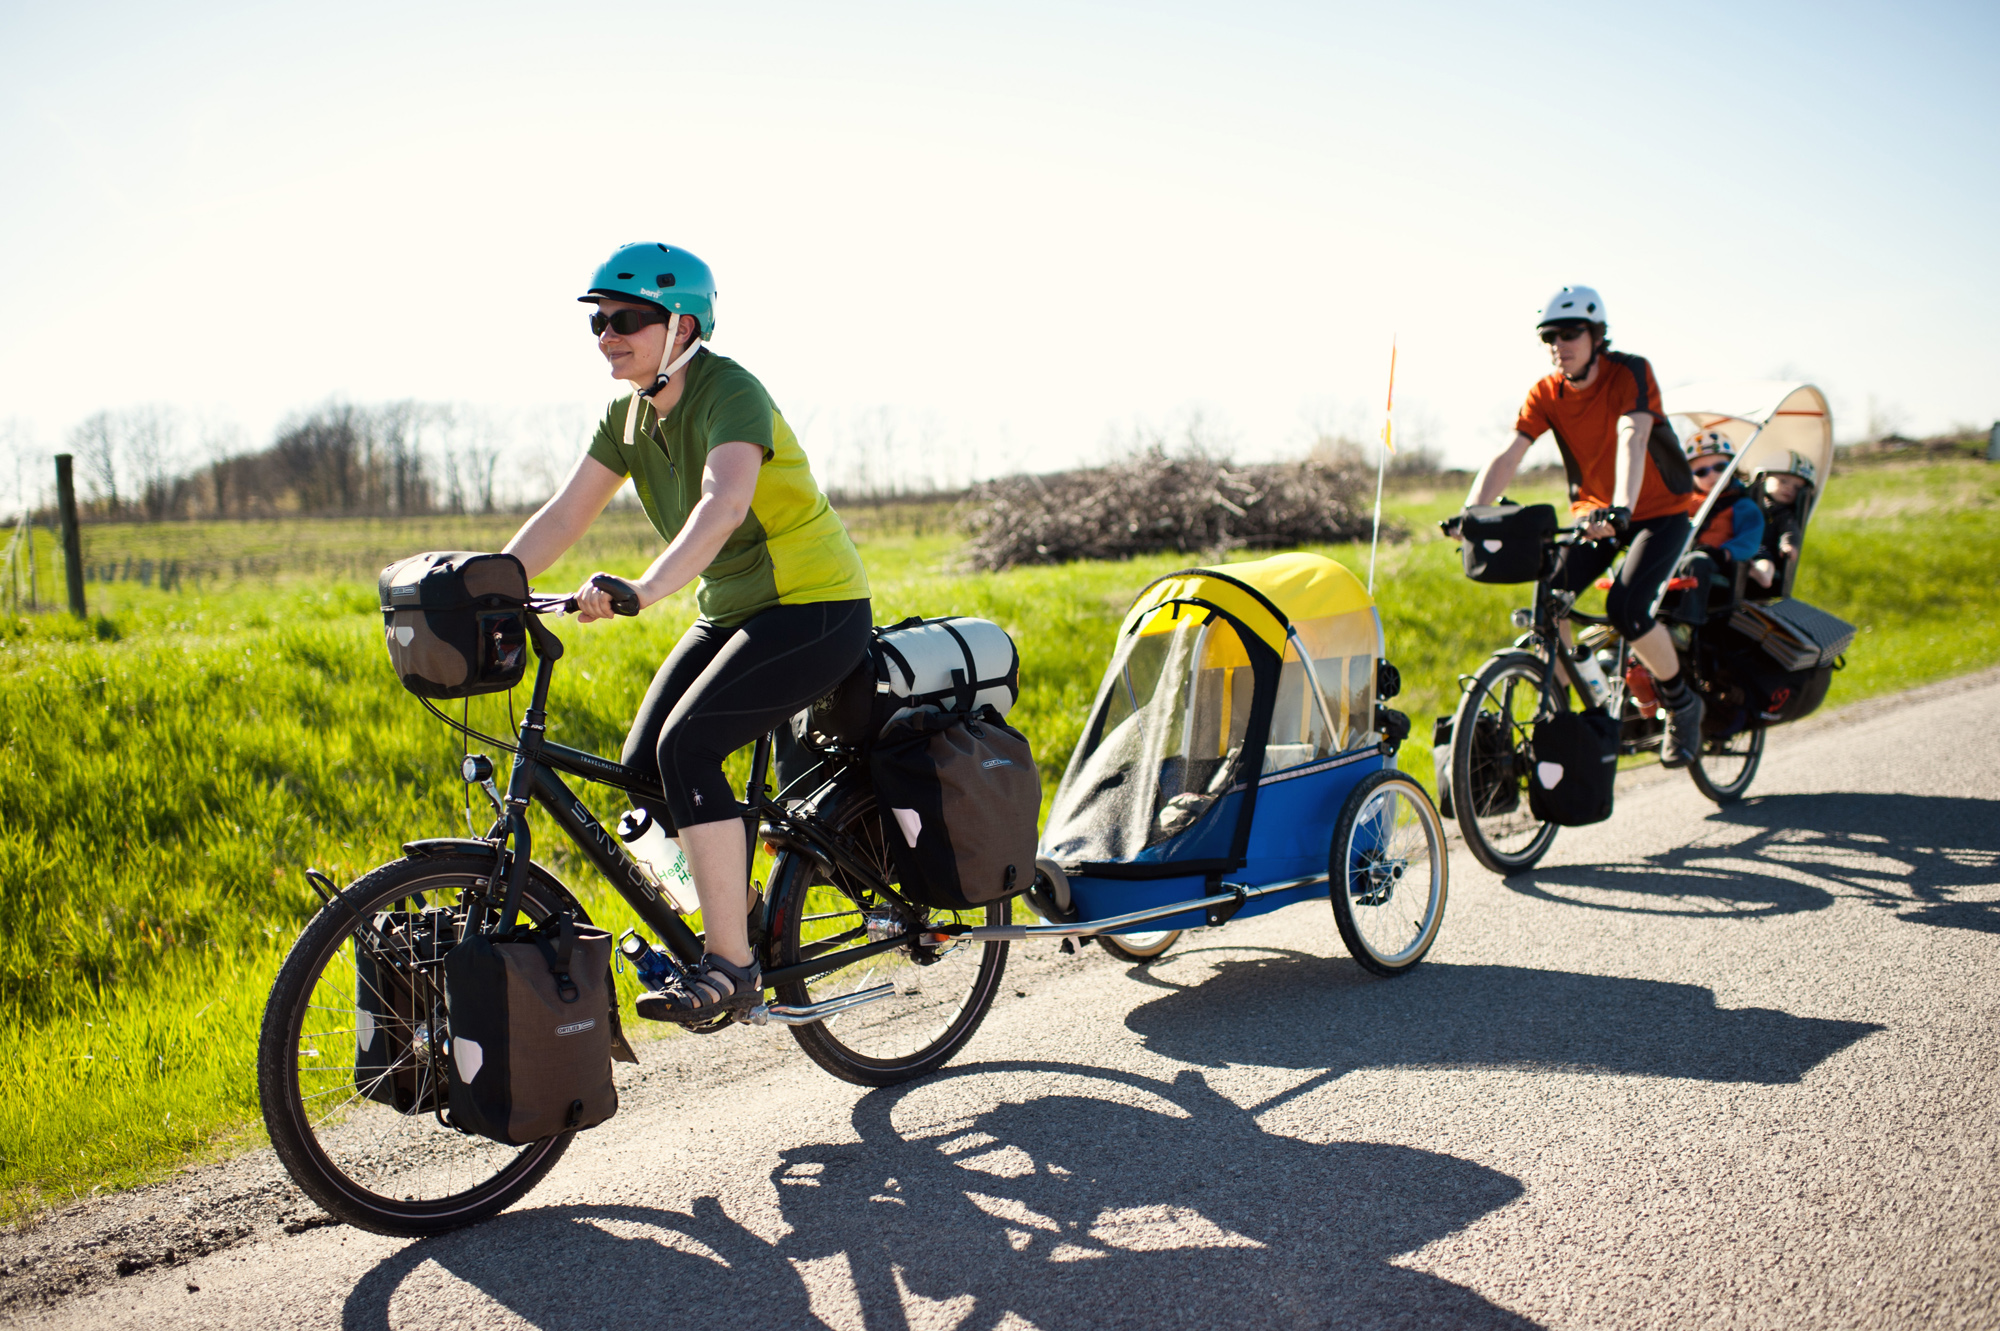 Riding a Gates Carbon belt drive outfitted Santos bike, Heidi leads her Pedal Powered Family across North America.